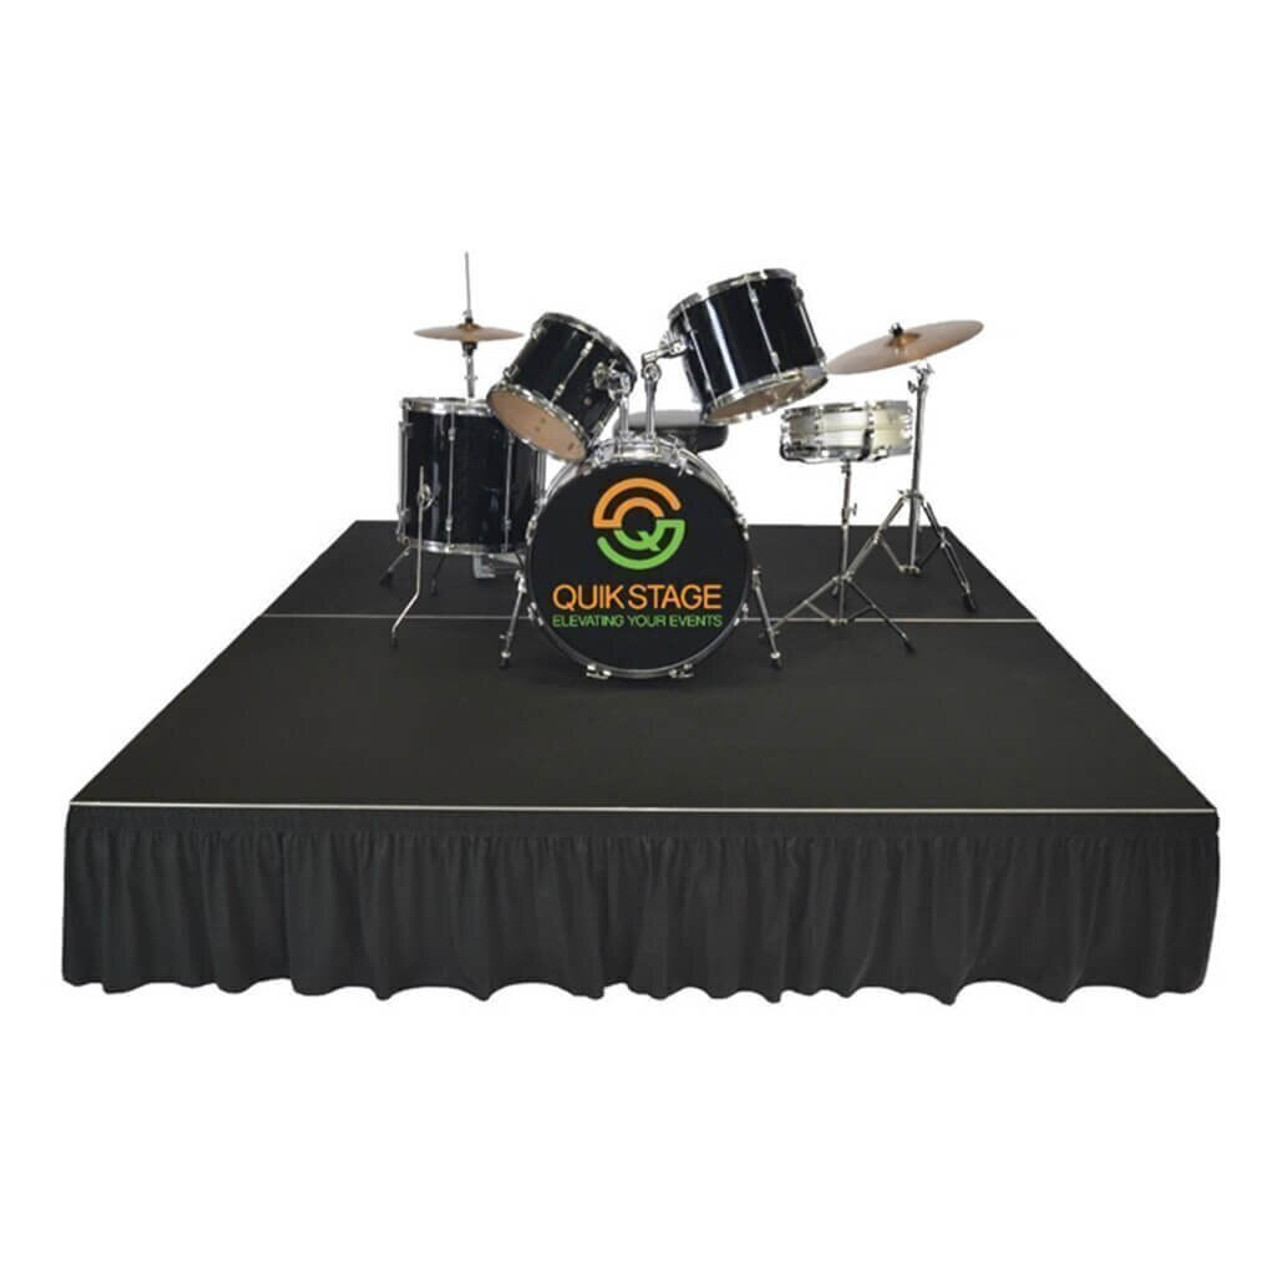 Top reviewed Quik Stage 8' x 24' High Portable Stage Package with Black Polyvinyl Non-Skid Surface. Additional Heights and Surfaces Available - Drum Riser with skirting